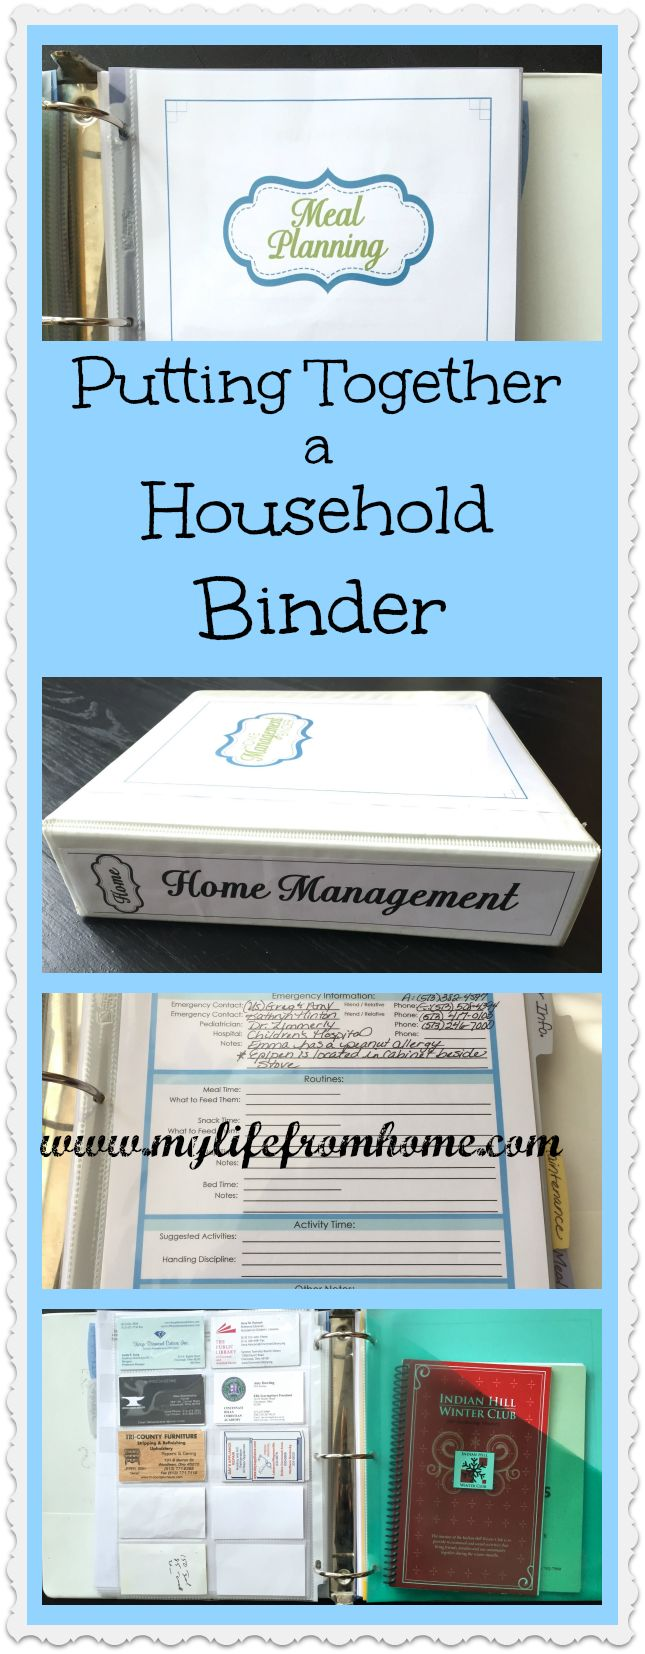 Need help organizing your household? All you need to know about putting together a household binder! | www.mylifefromhome.com | paper organization | organizing files | household paperwork | filing system